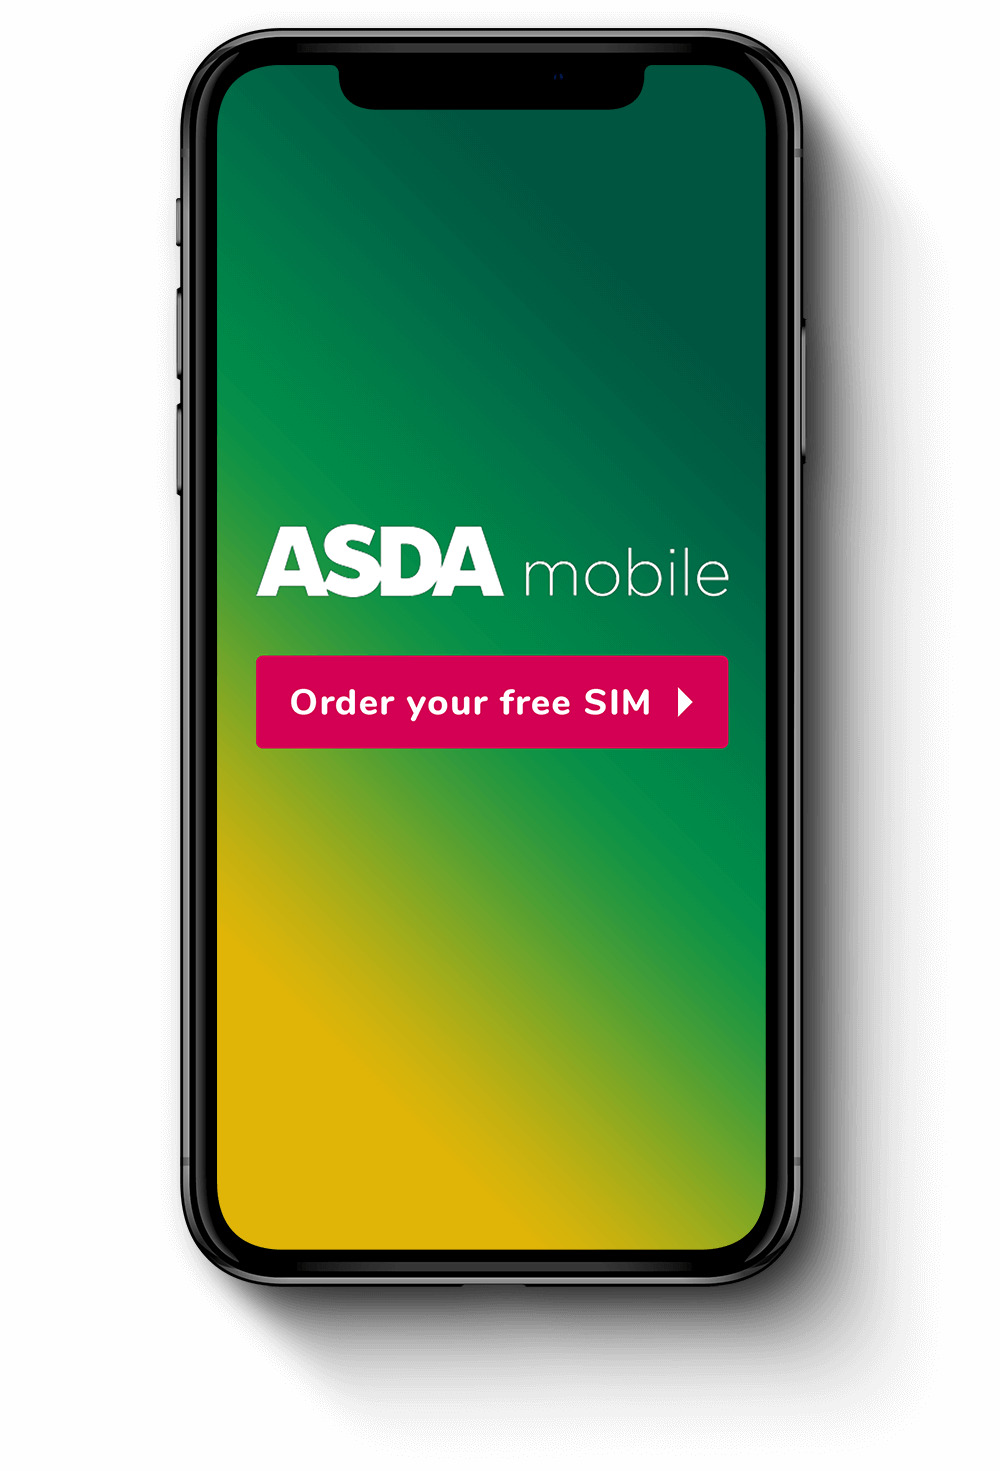 Asda mobile iPhone CTA